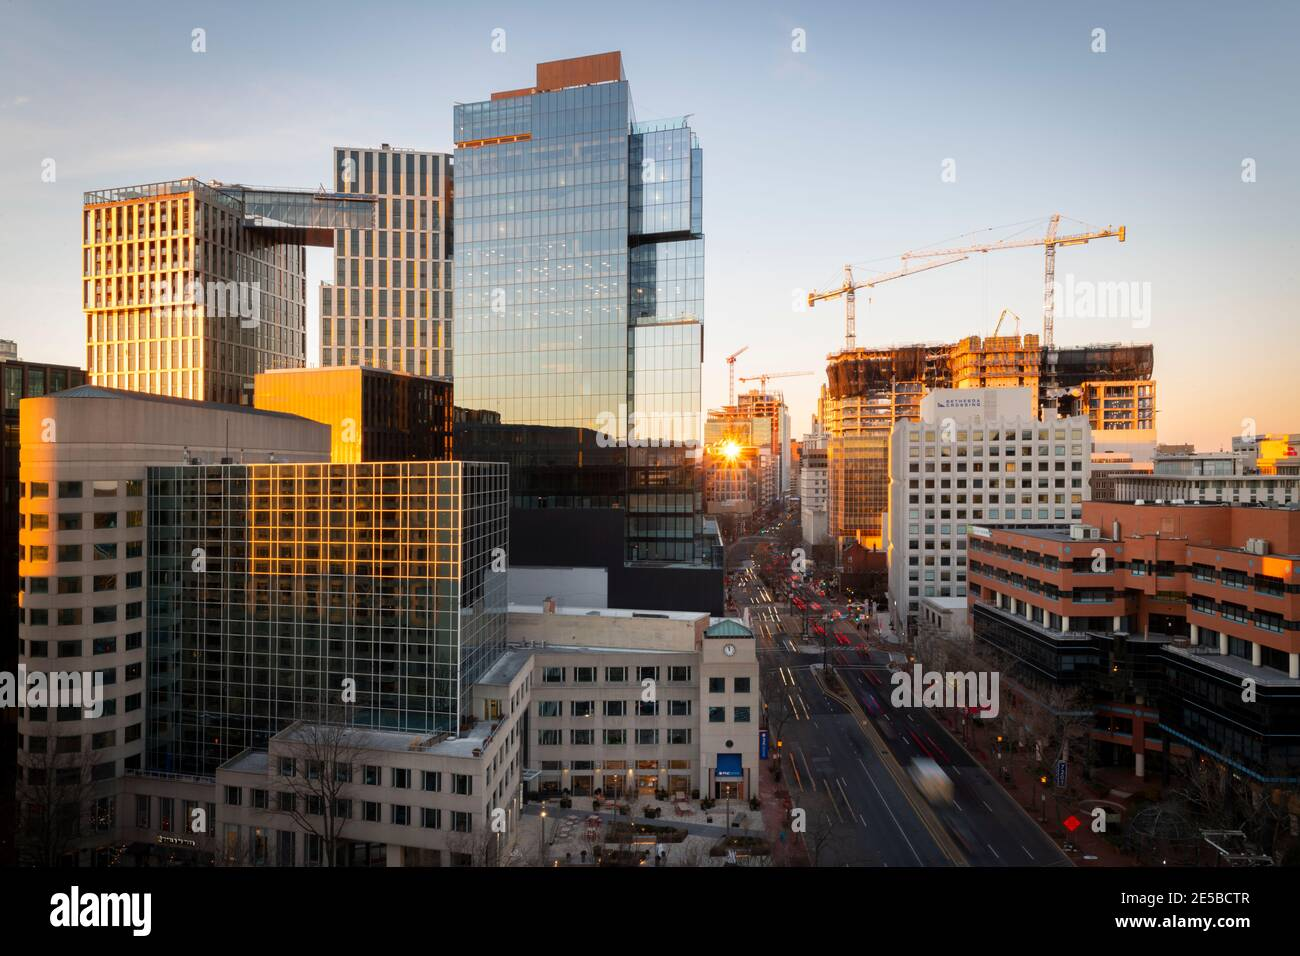 usa-maryland-md-bethesda-skyline-at-evening-with-new-construction-of-office-and-residential-buildings-2E5BCTR.jpg